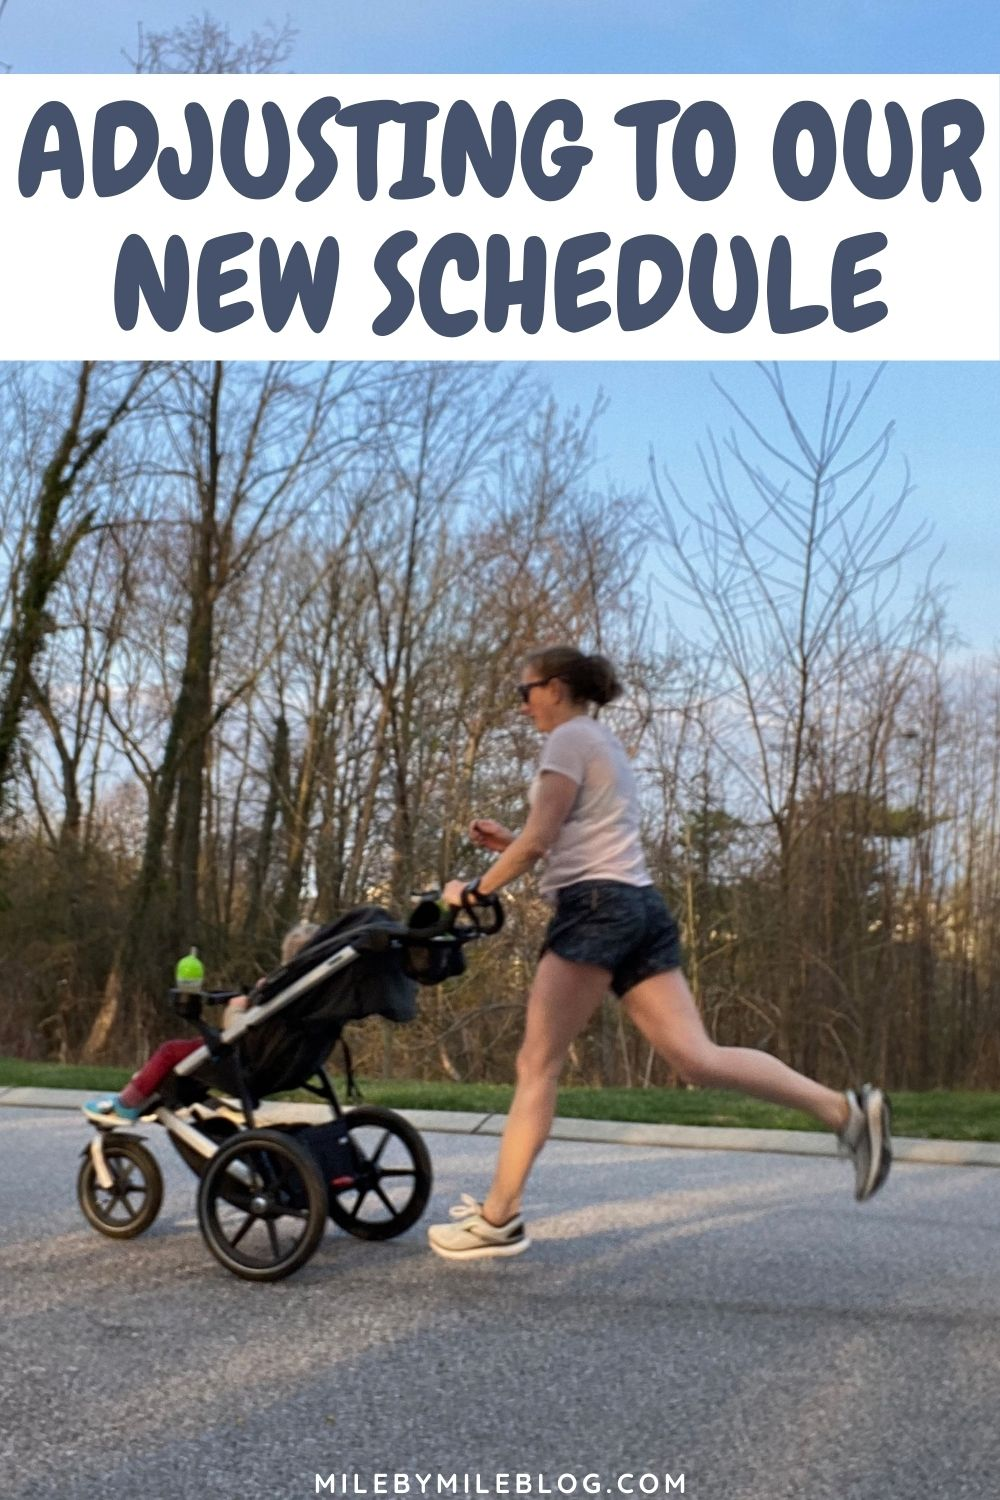 This felt like a long, strange week as we were adjusting to our new schedule. There were still lots of miles, just not as many stroller miles. The weather finally realized that it's actually spring and I was able to wear shorts on all my runs. I also got lucky and had my rest day scheduled on the one day it rained! Here's how the week looked overall.